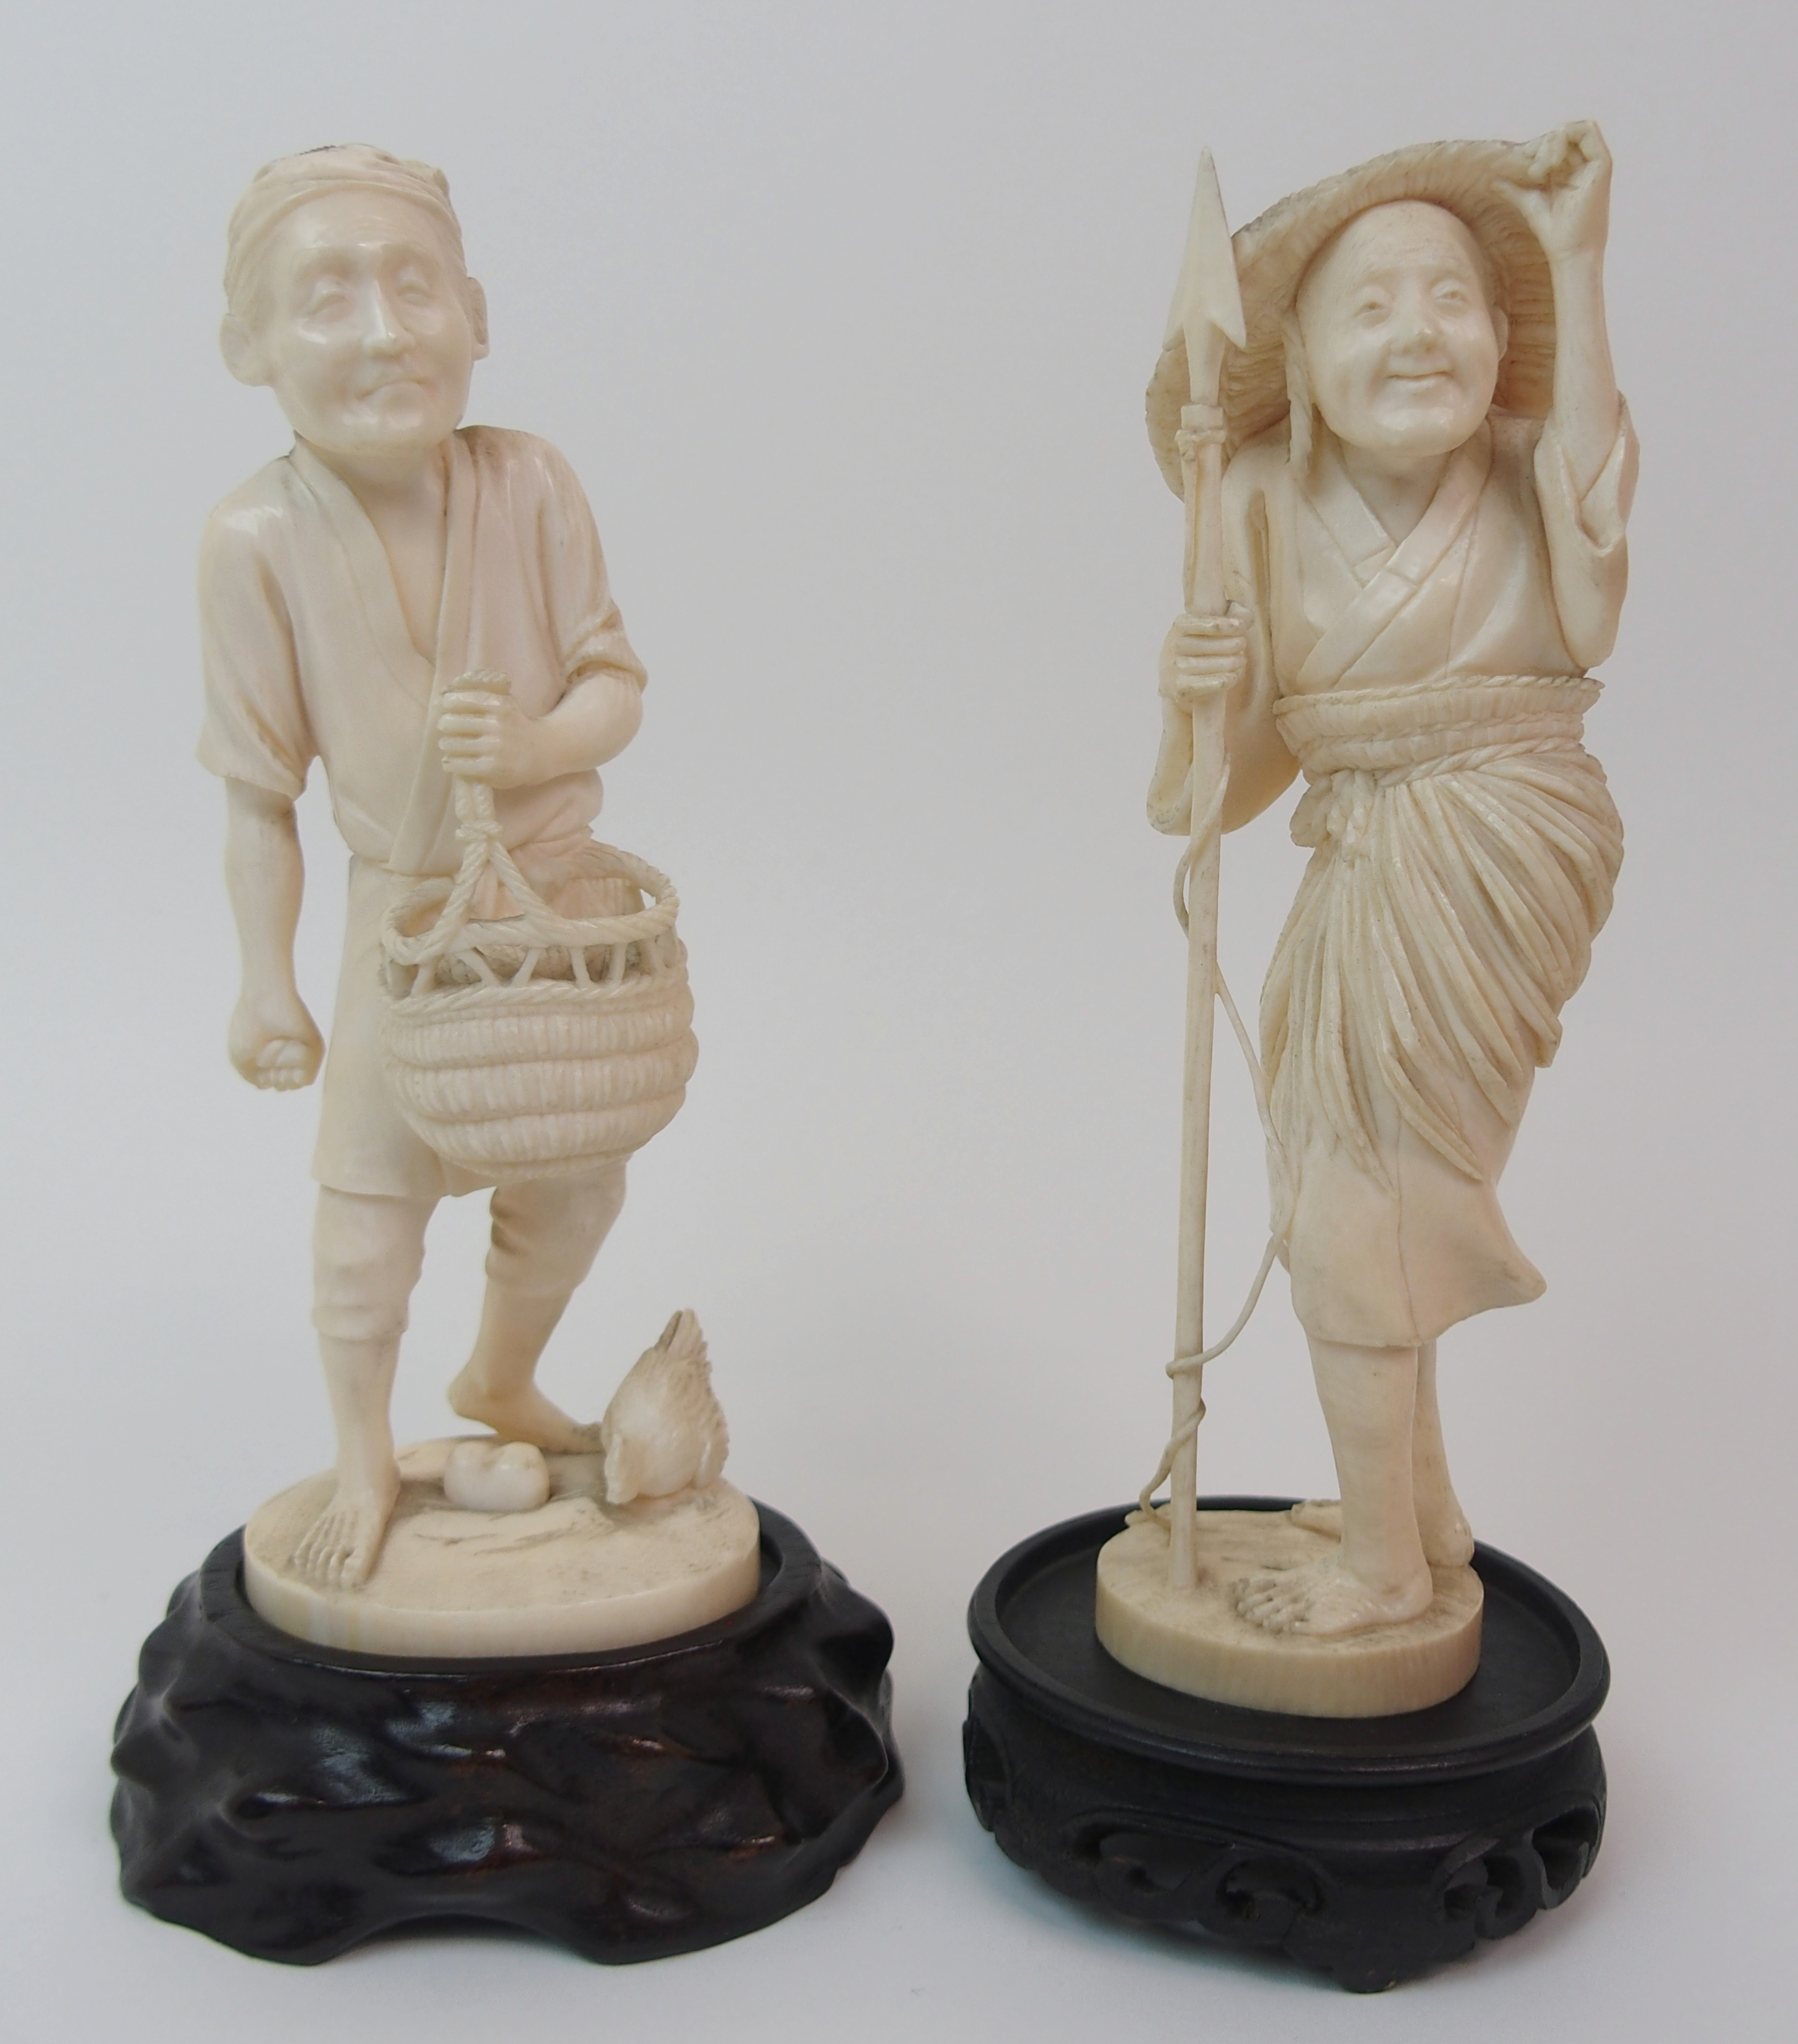 Lot 22 - AN IVORY OKIMONO OF A FISHERWOMAN holding a harpoon, 17cm high and a farmer feeding chickens, 16.5cm